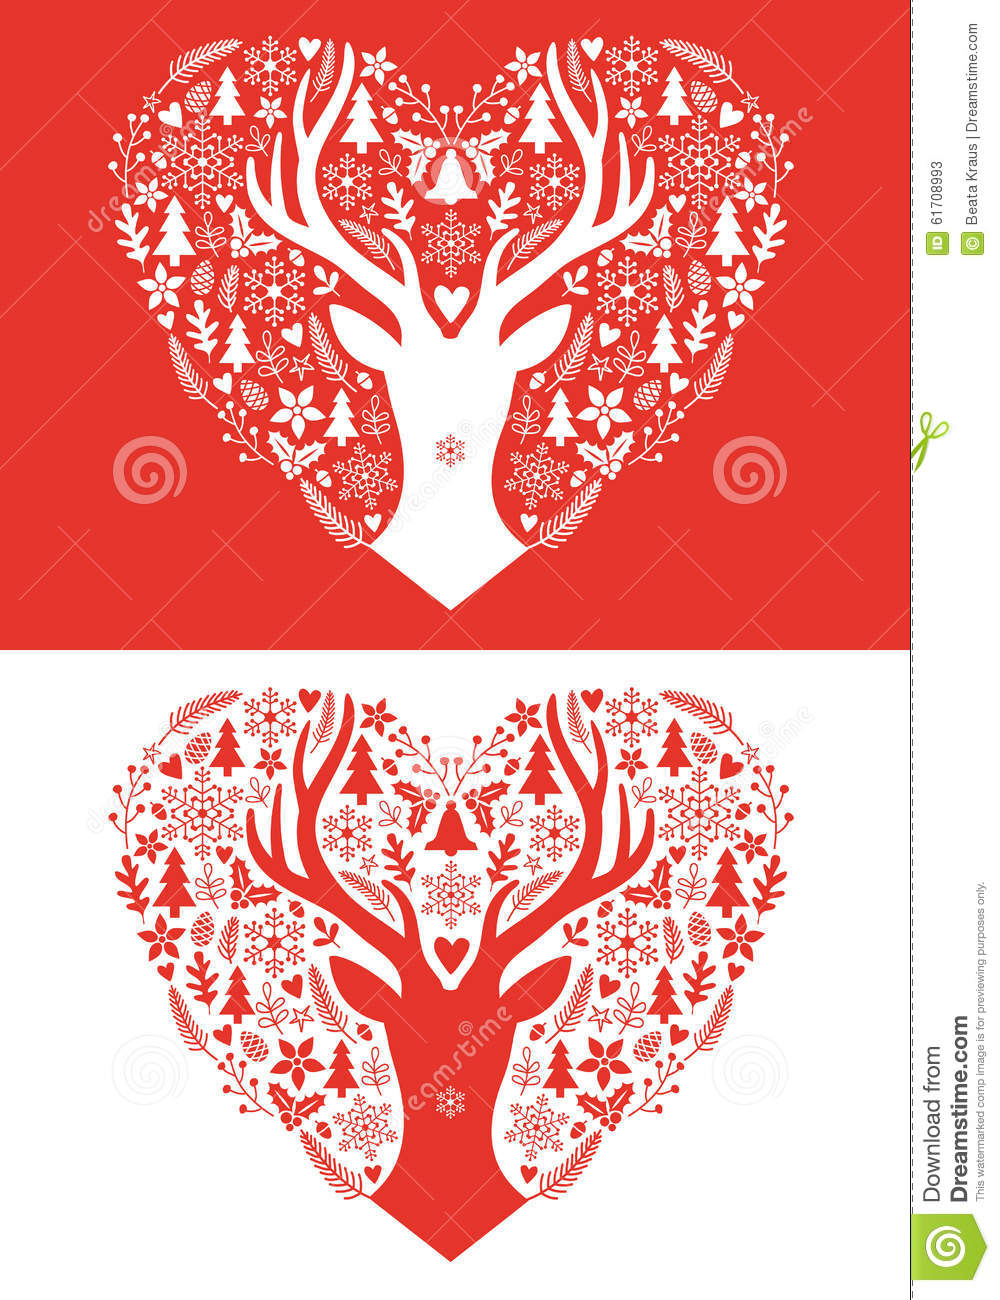 holiday hearts wallpaper vector - photo #47